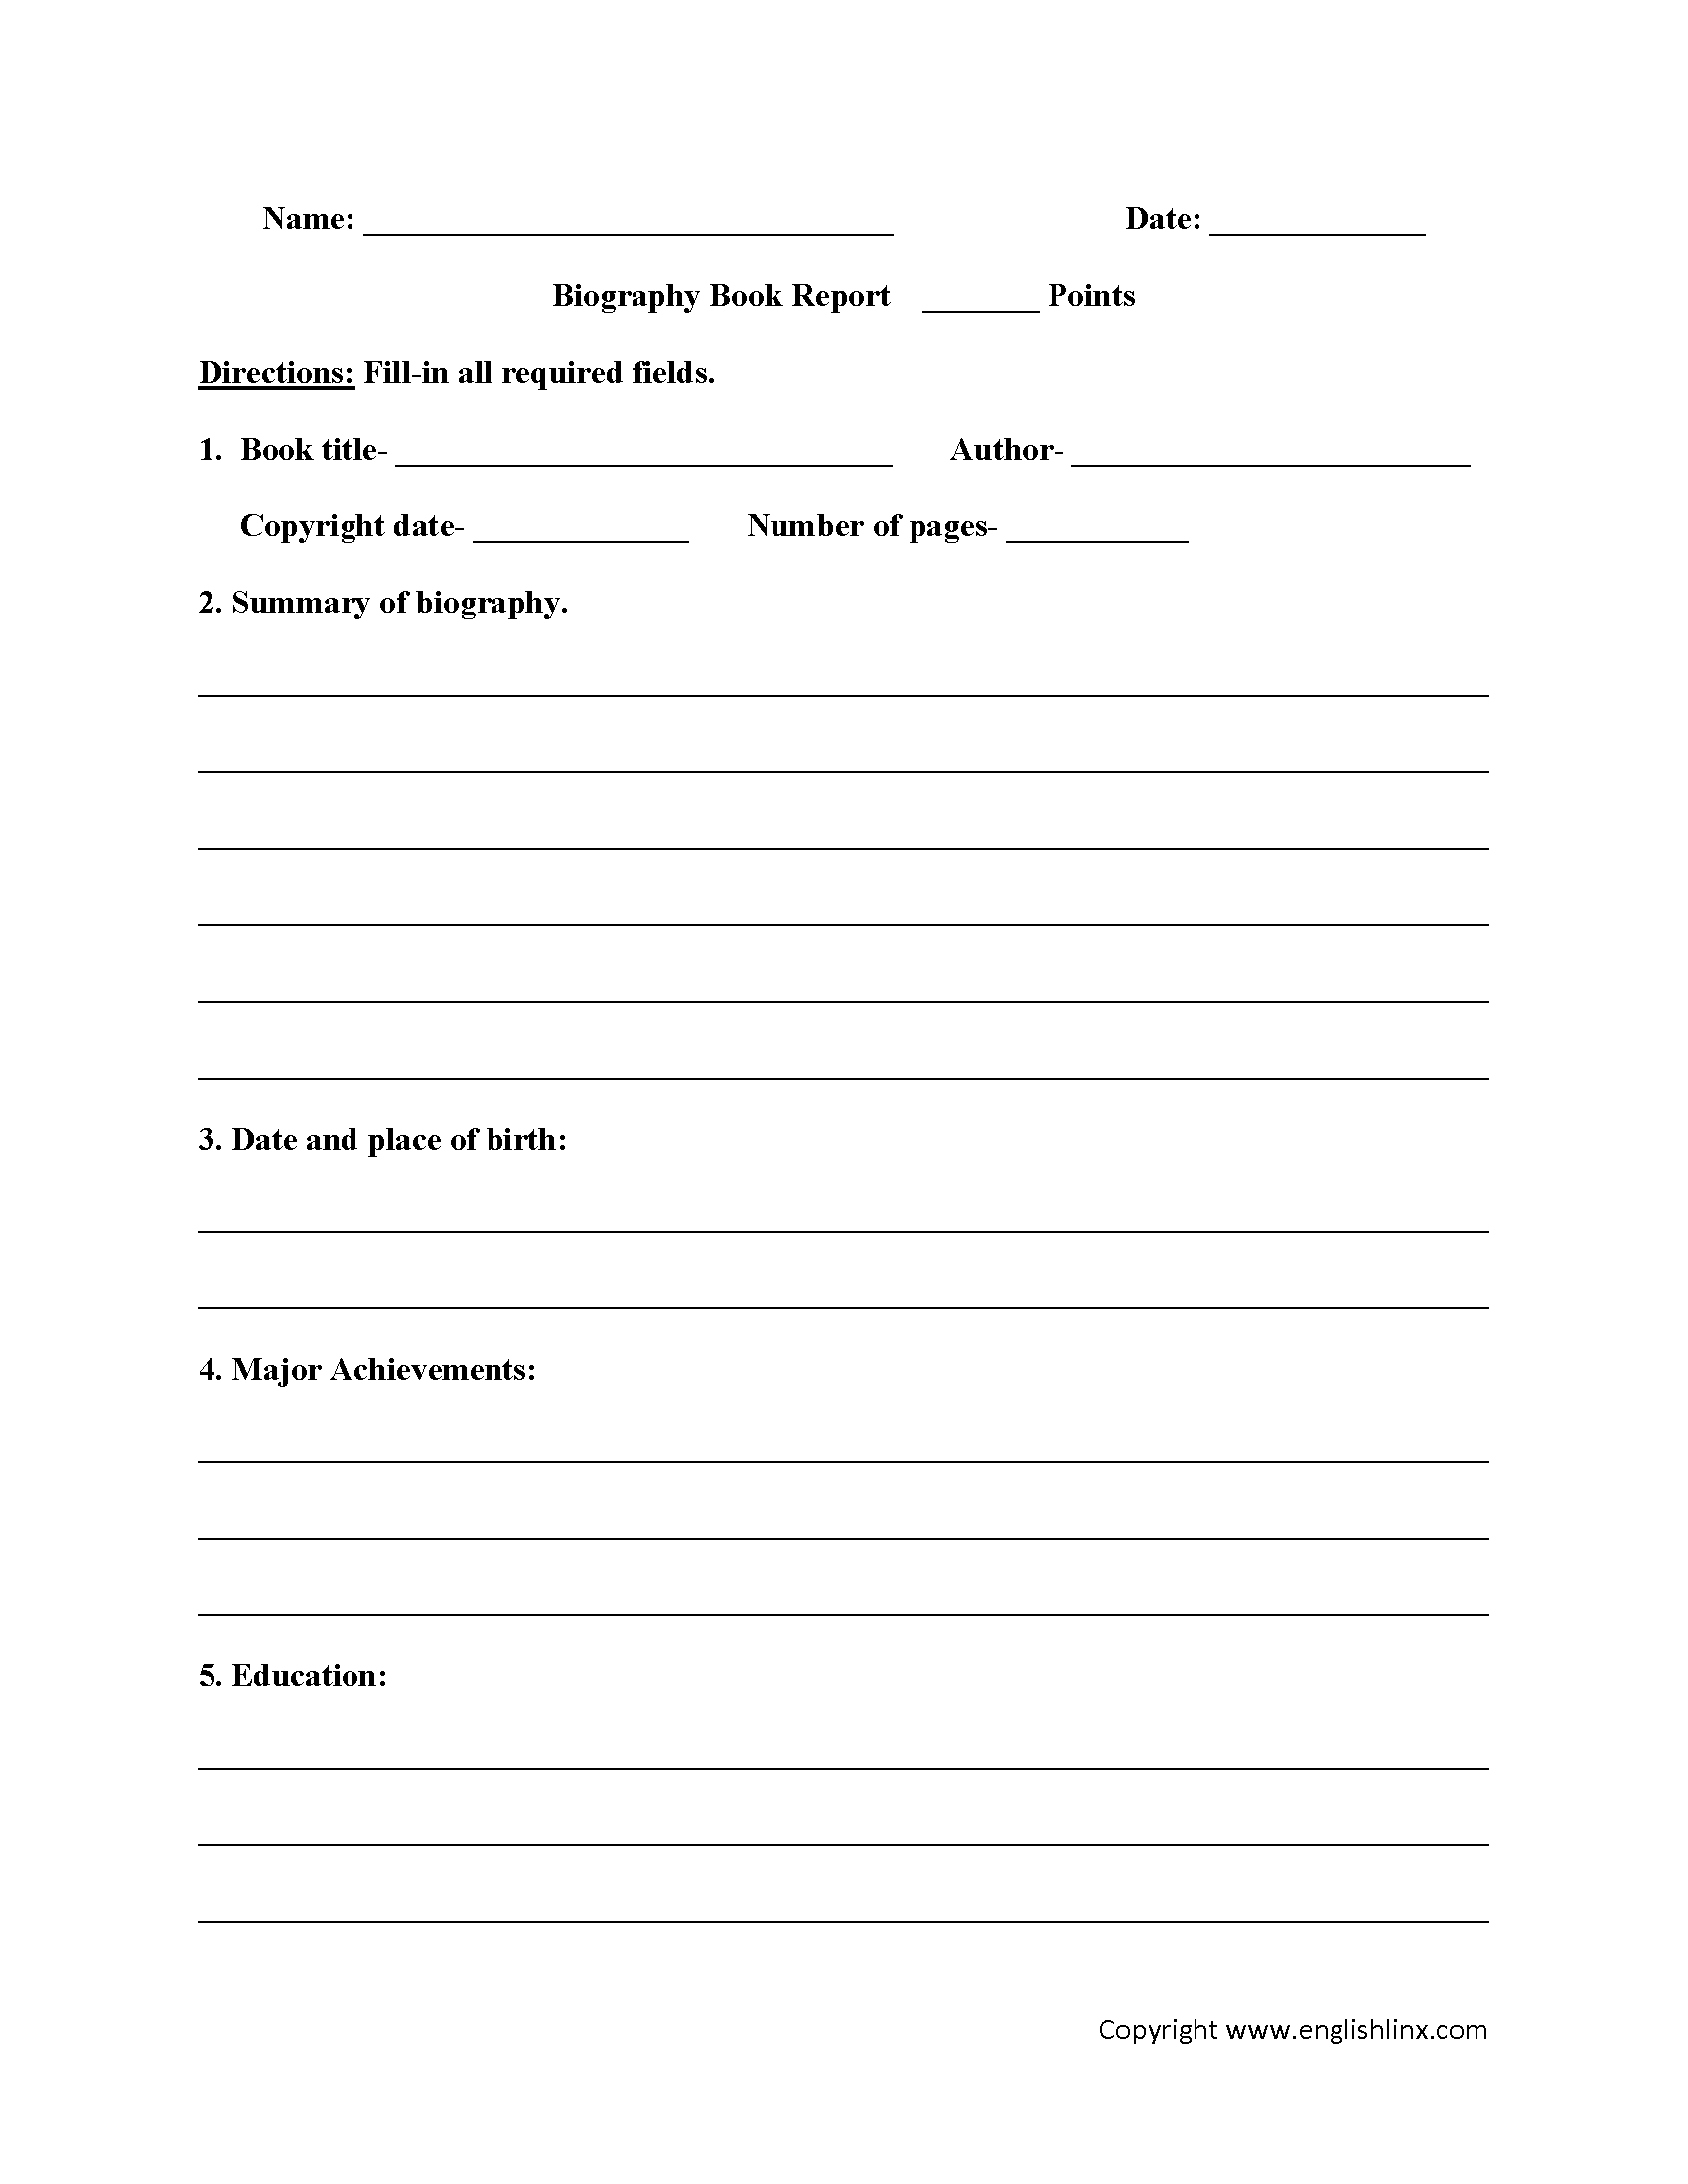 3rd Grade Biography Report Template